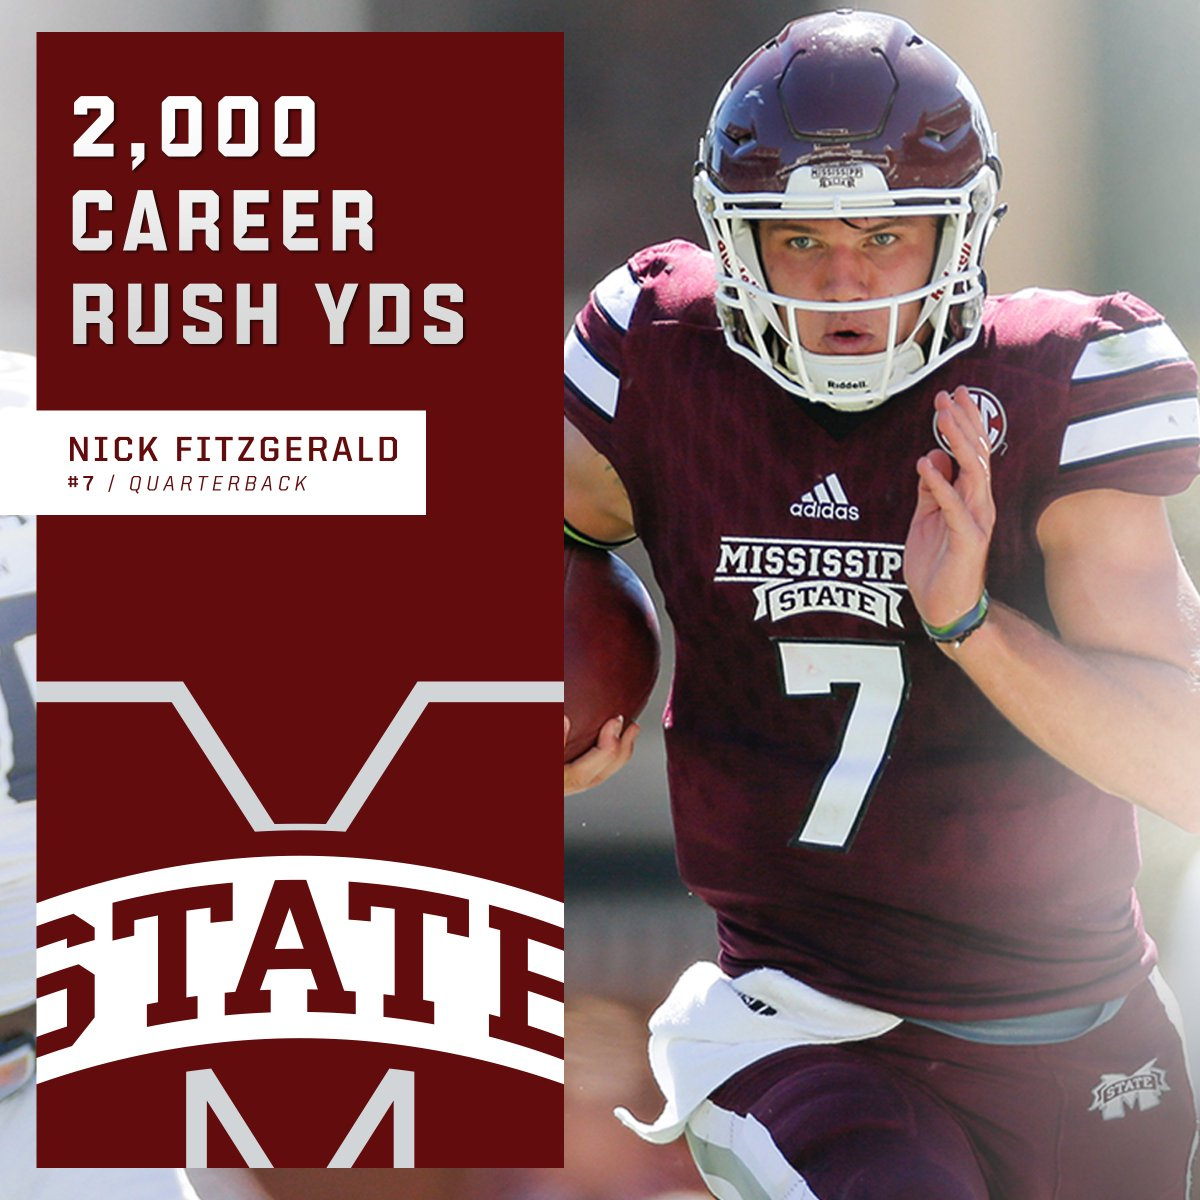 🔥Nicky Fitz 🔥  The 7th QB in @SEC history to rush for 2,000+ yards: @HailStateFB's Nick Fitzgerald.